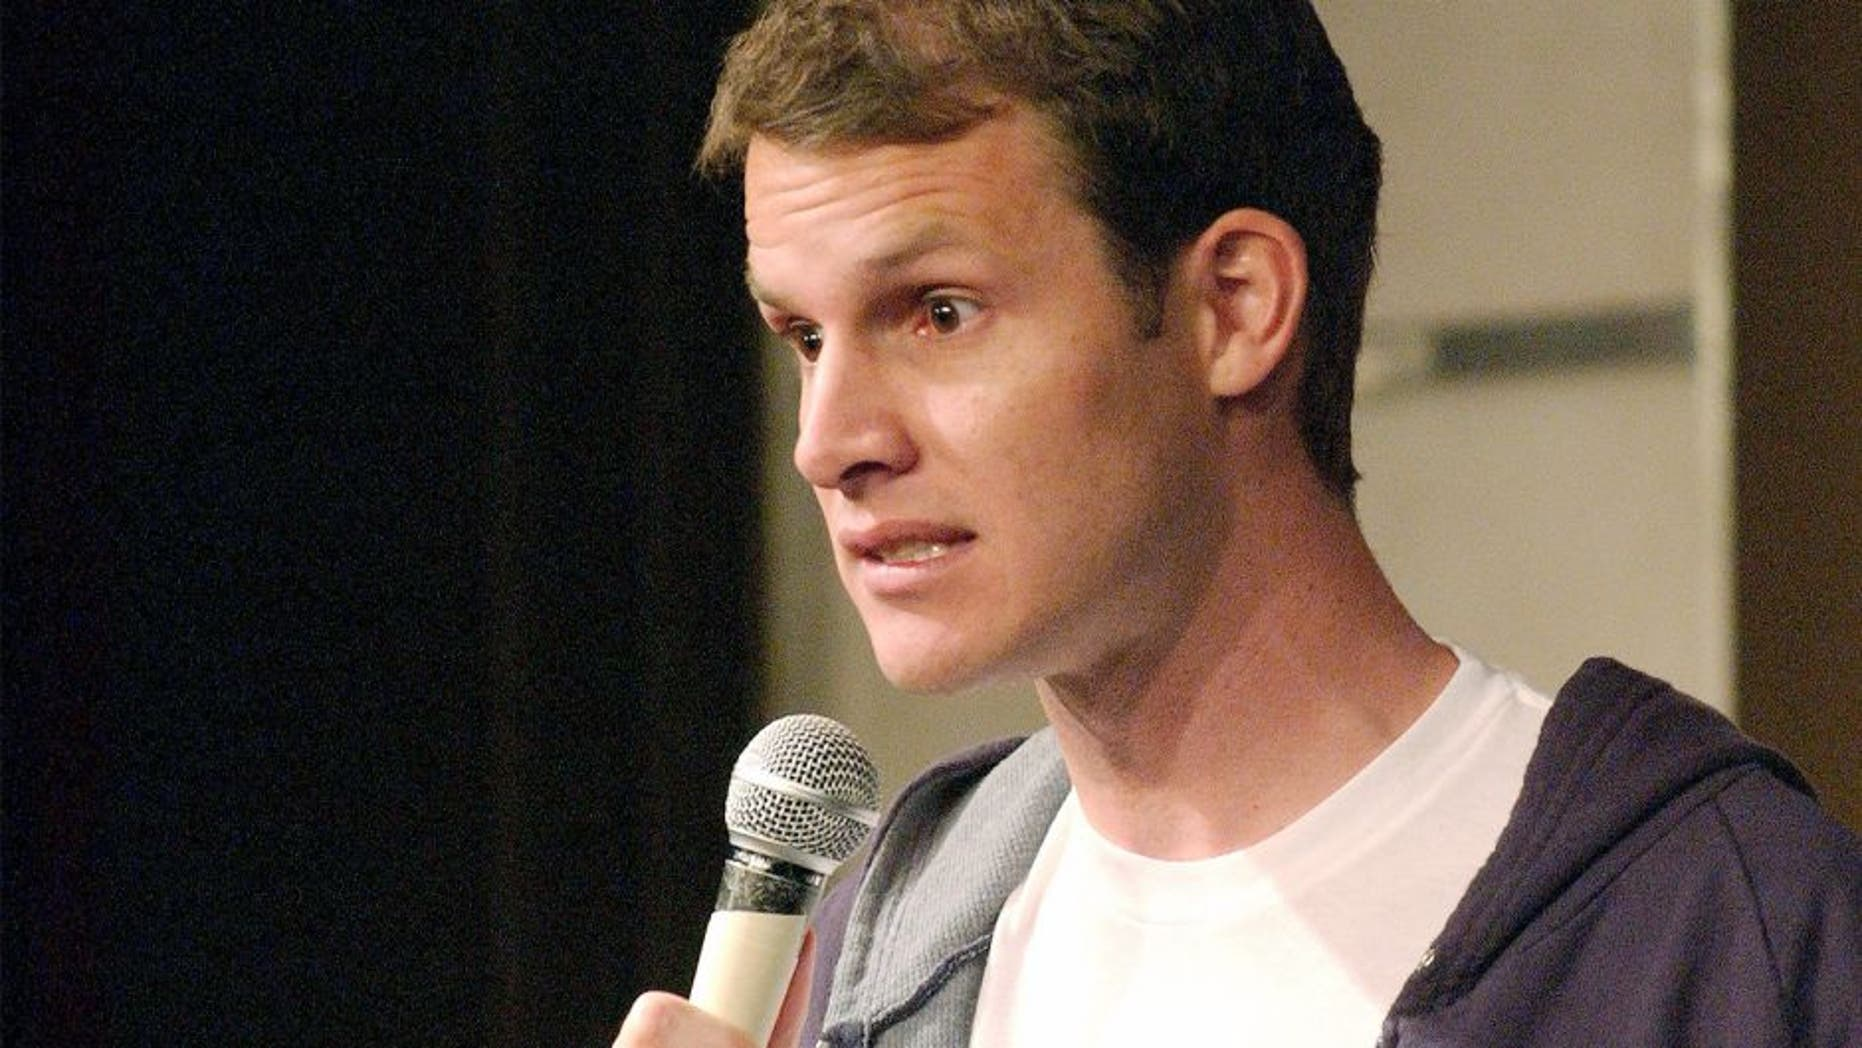 LOS ANGELES, CA - FEBRUARY 20: Daniel Tosh performs at the Hollywood Improv on February 20, 2008 in Los Angeles, CA. (Photo by Michael Schwartz/WireImage) *** Local Caption ***